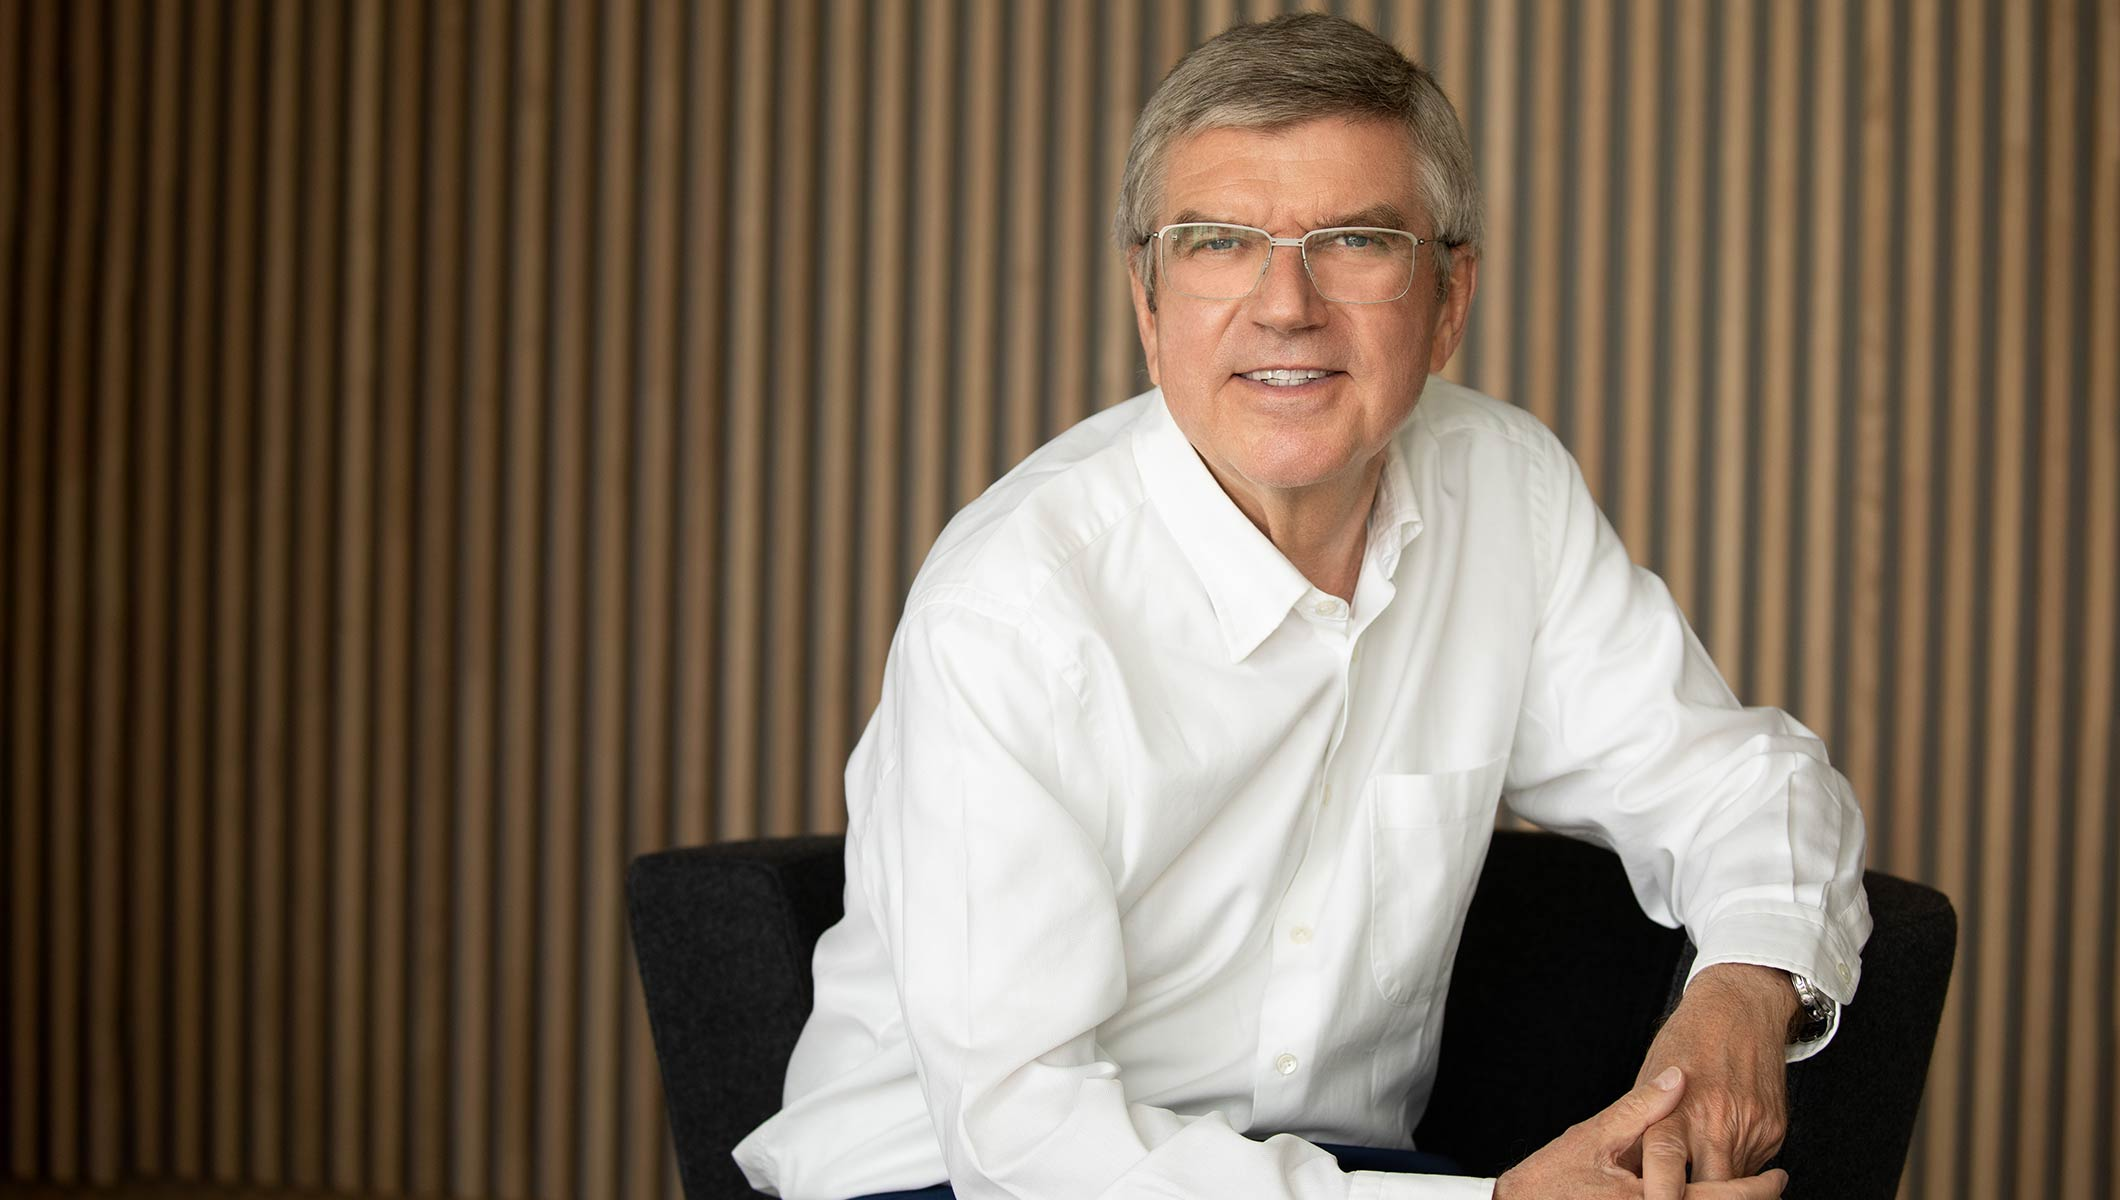 THOMAS BACH'S LETTER TO THE OLYMPIC MOVEMENT